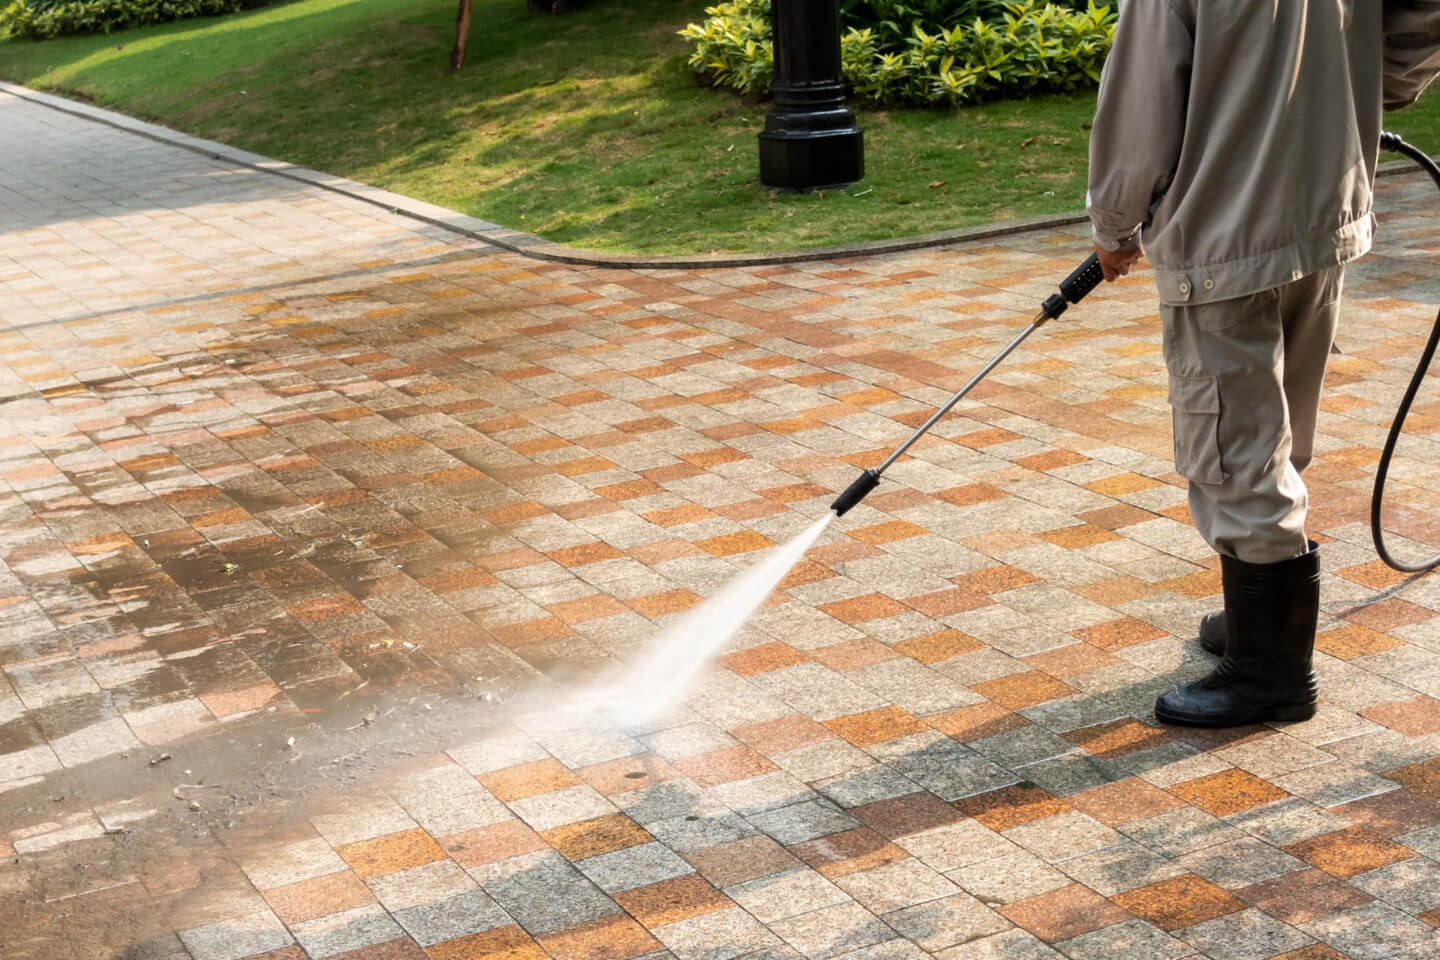 How to choose anti-slip flooring for the backyard? Understand now.